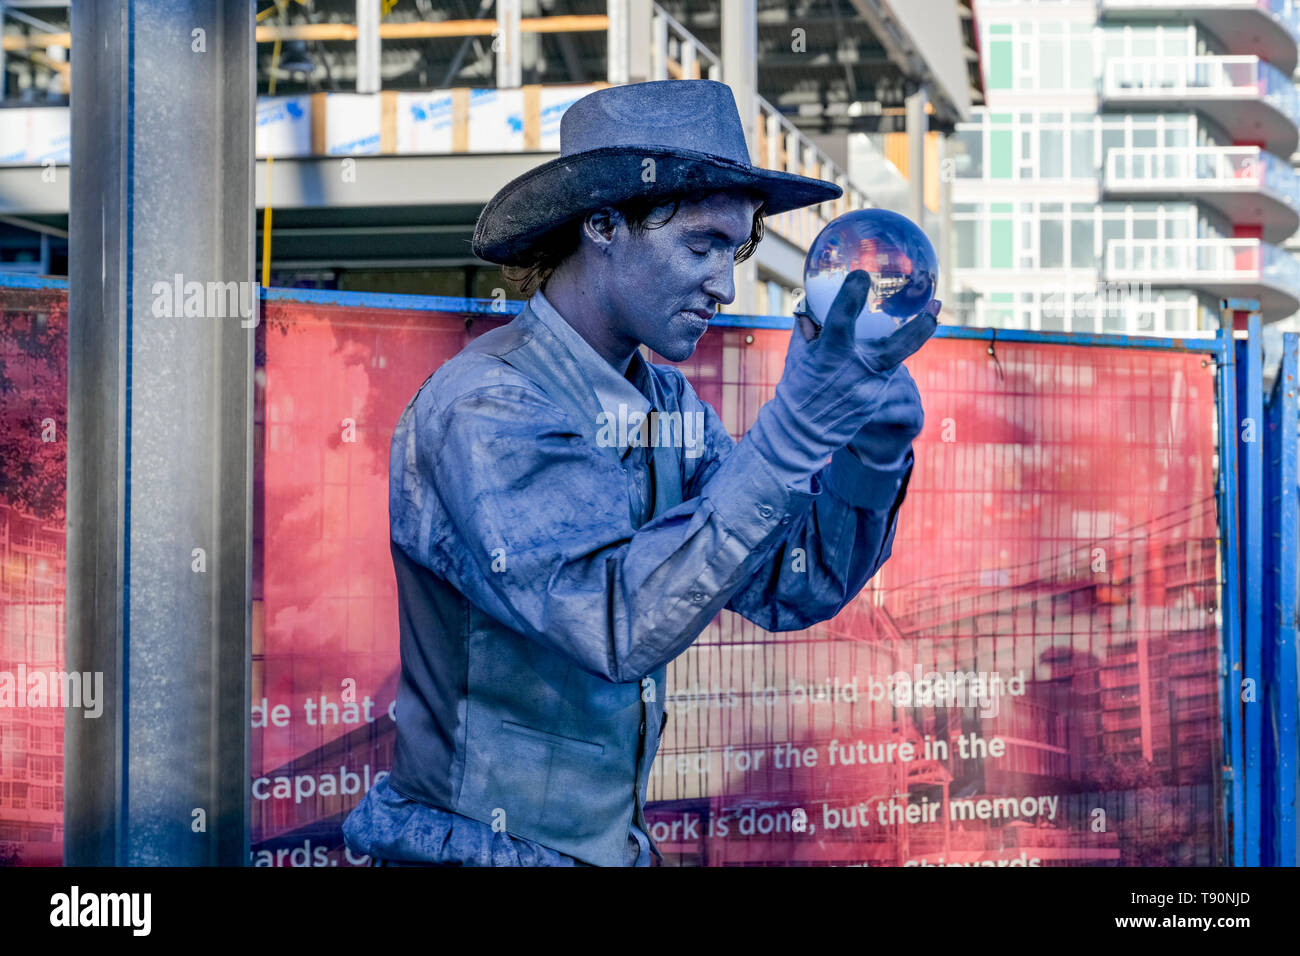 Mime, street performer, Shipyards Night Market, Lonsdale Quay, North Vancouver, British Columbia, Canada - Stock Image